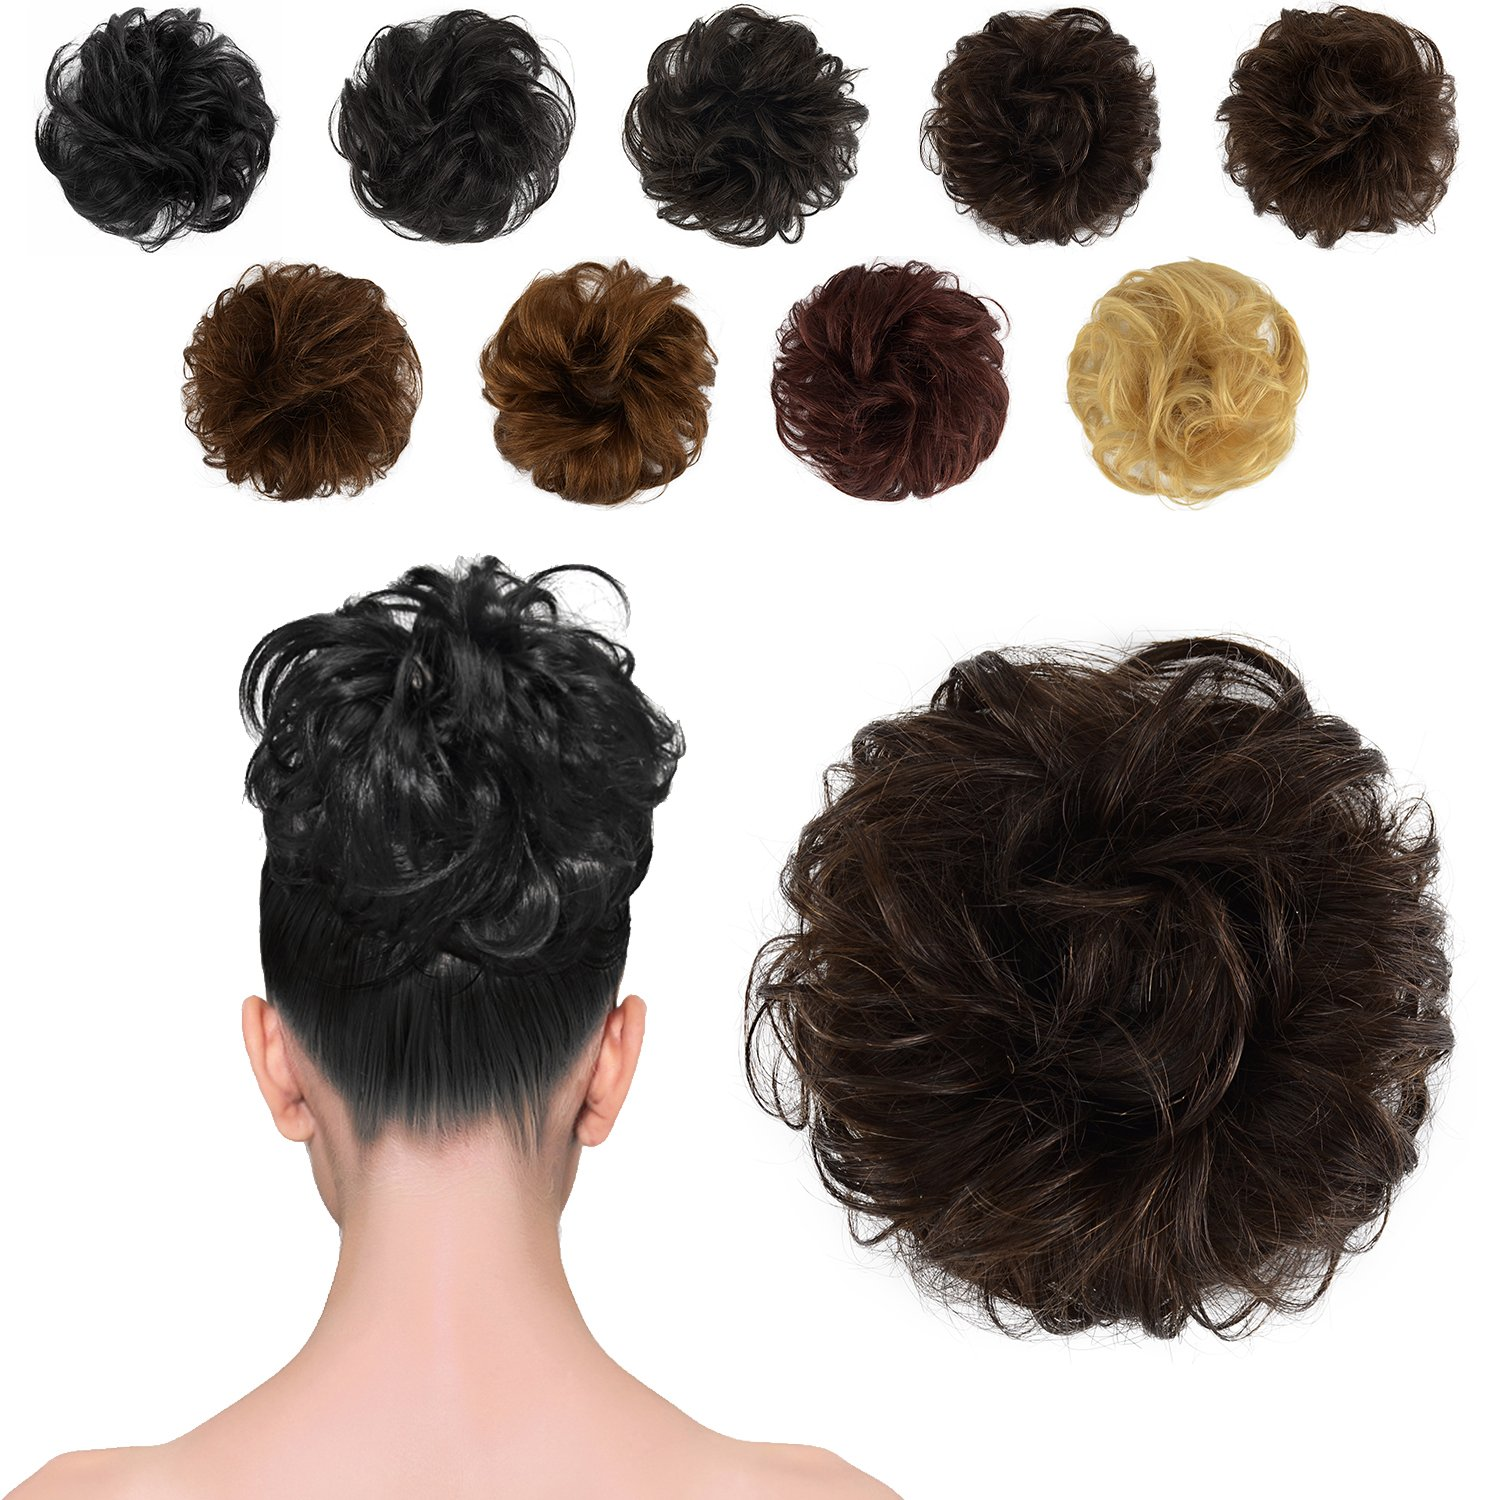 FESHFEN 100% Human Hair Scrunchies (4# Medium Brown) Curly Messy Hair Bun Extensions Wedding Hair Pieces for Women Kids Hair Updo Donut Chignons